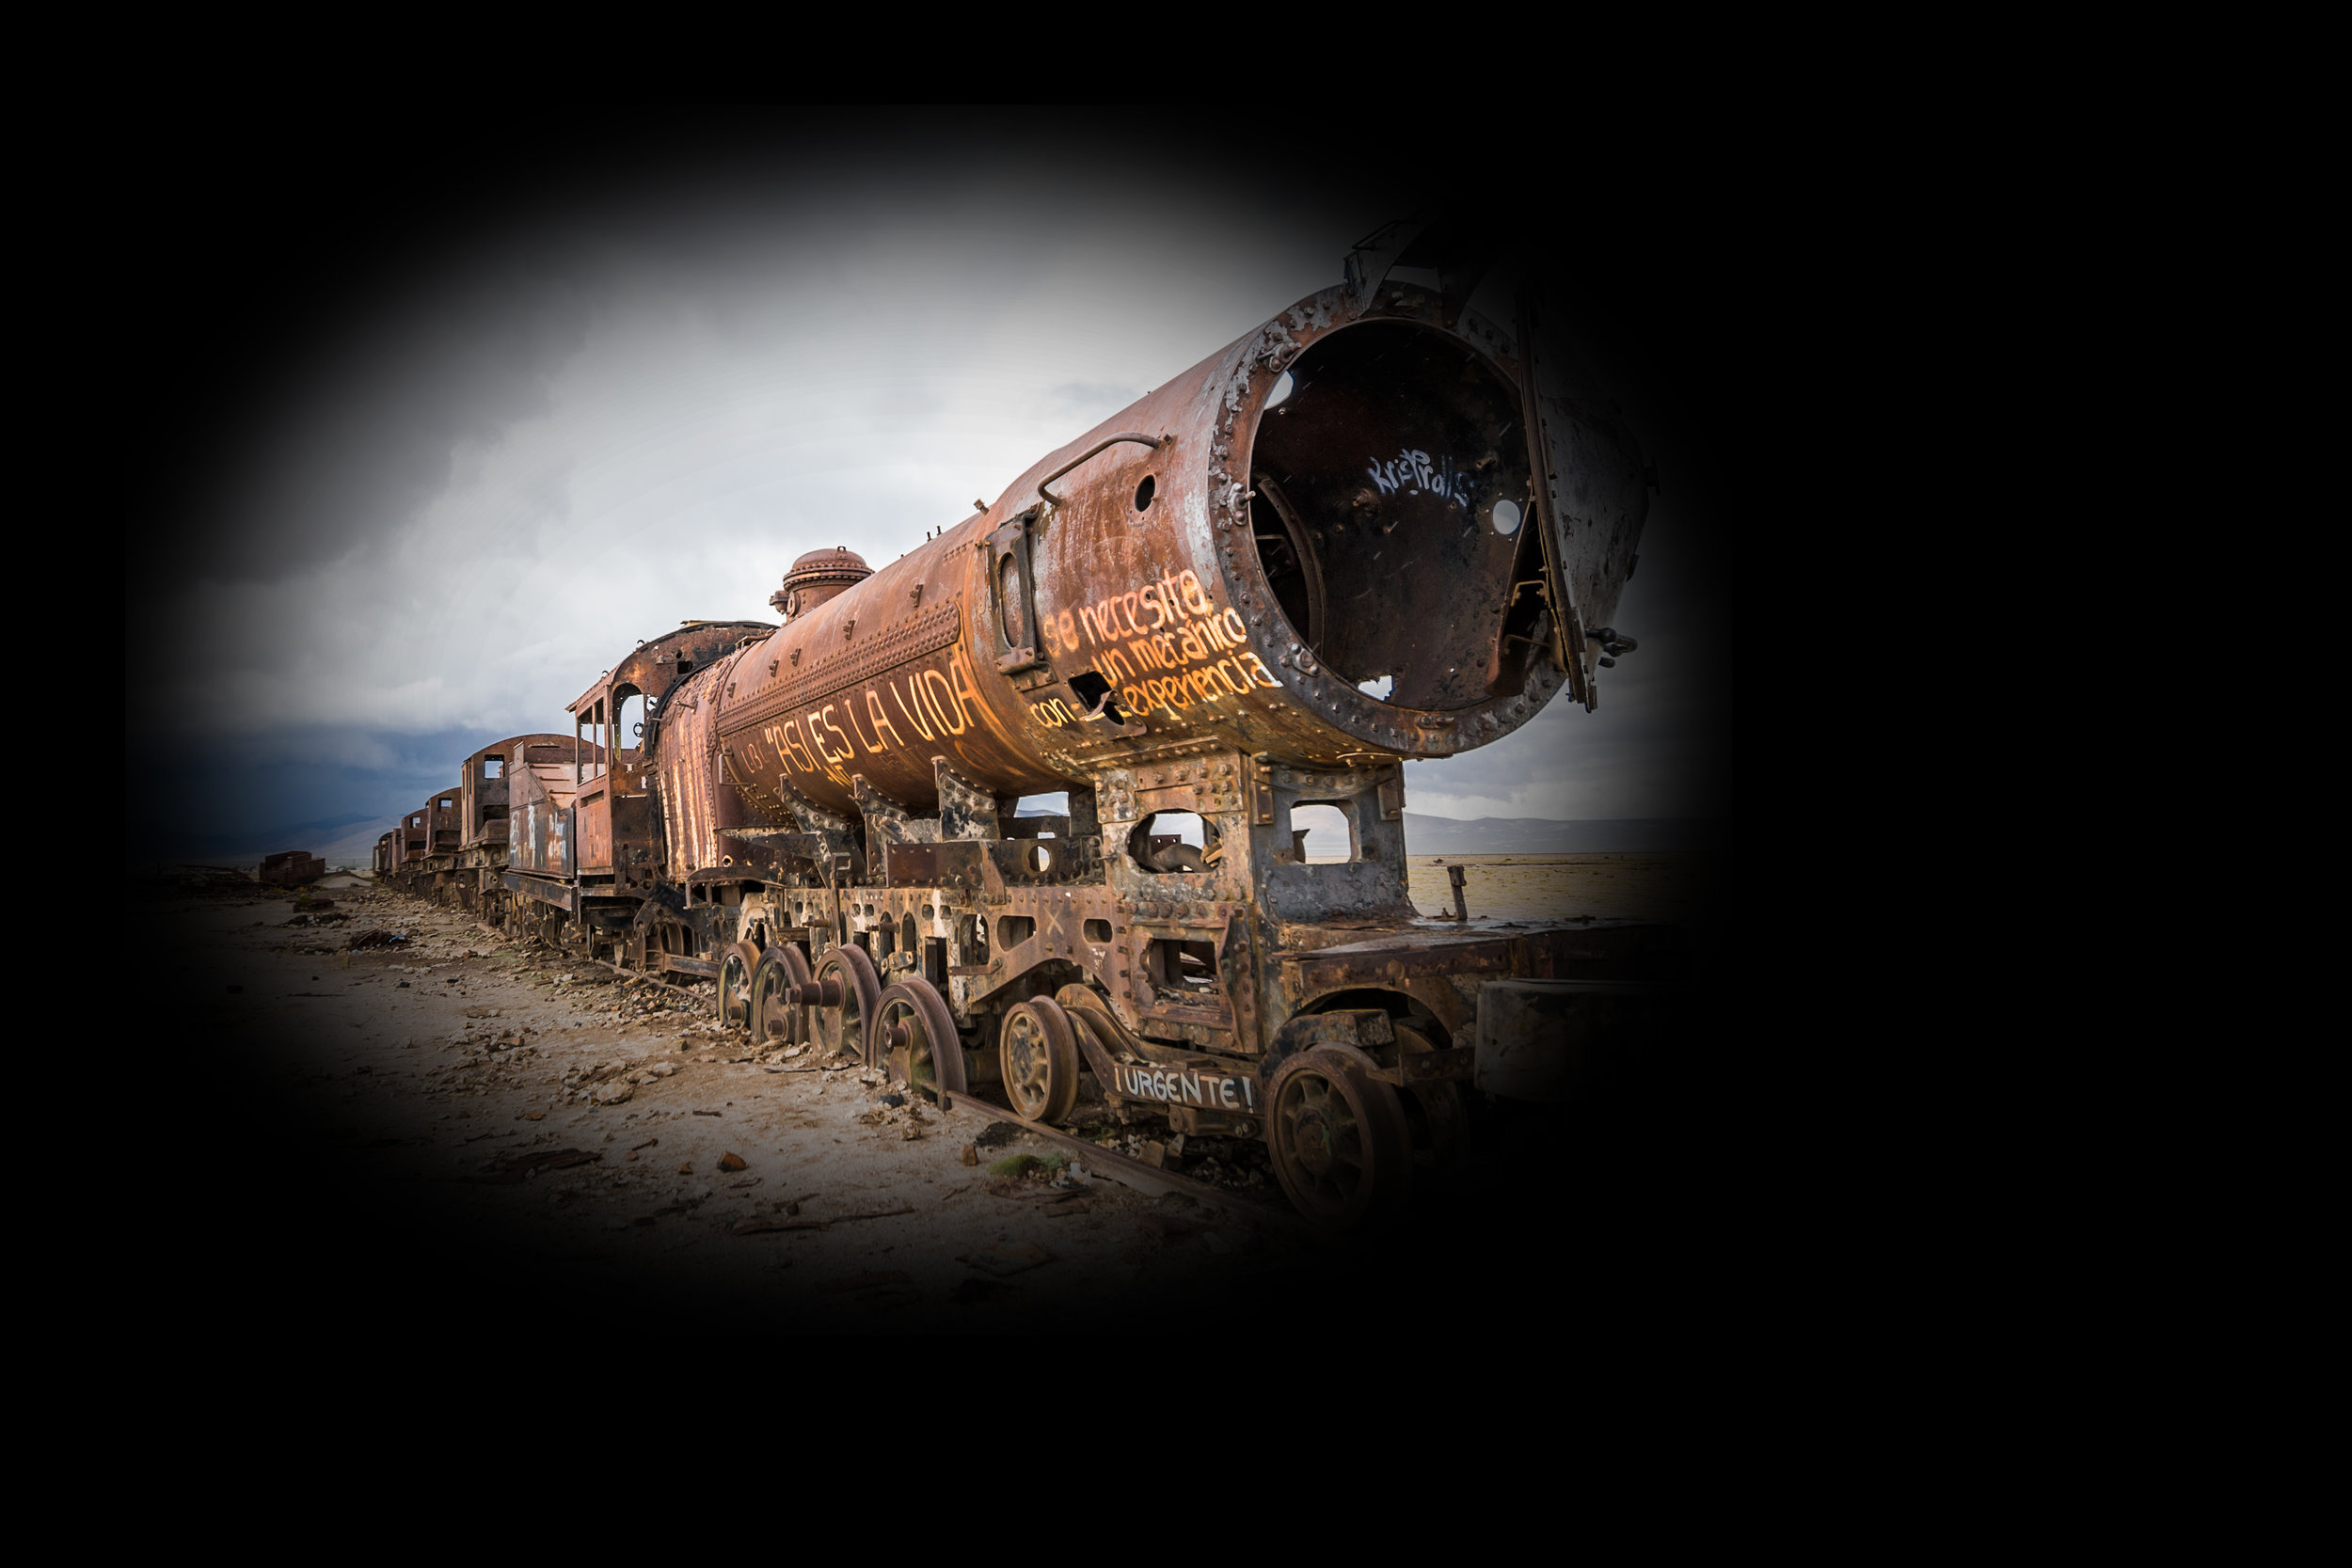 Can there be a train wreck— - —where there's no wrecked train?